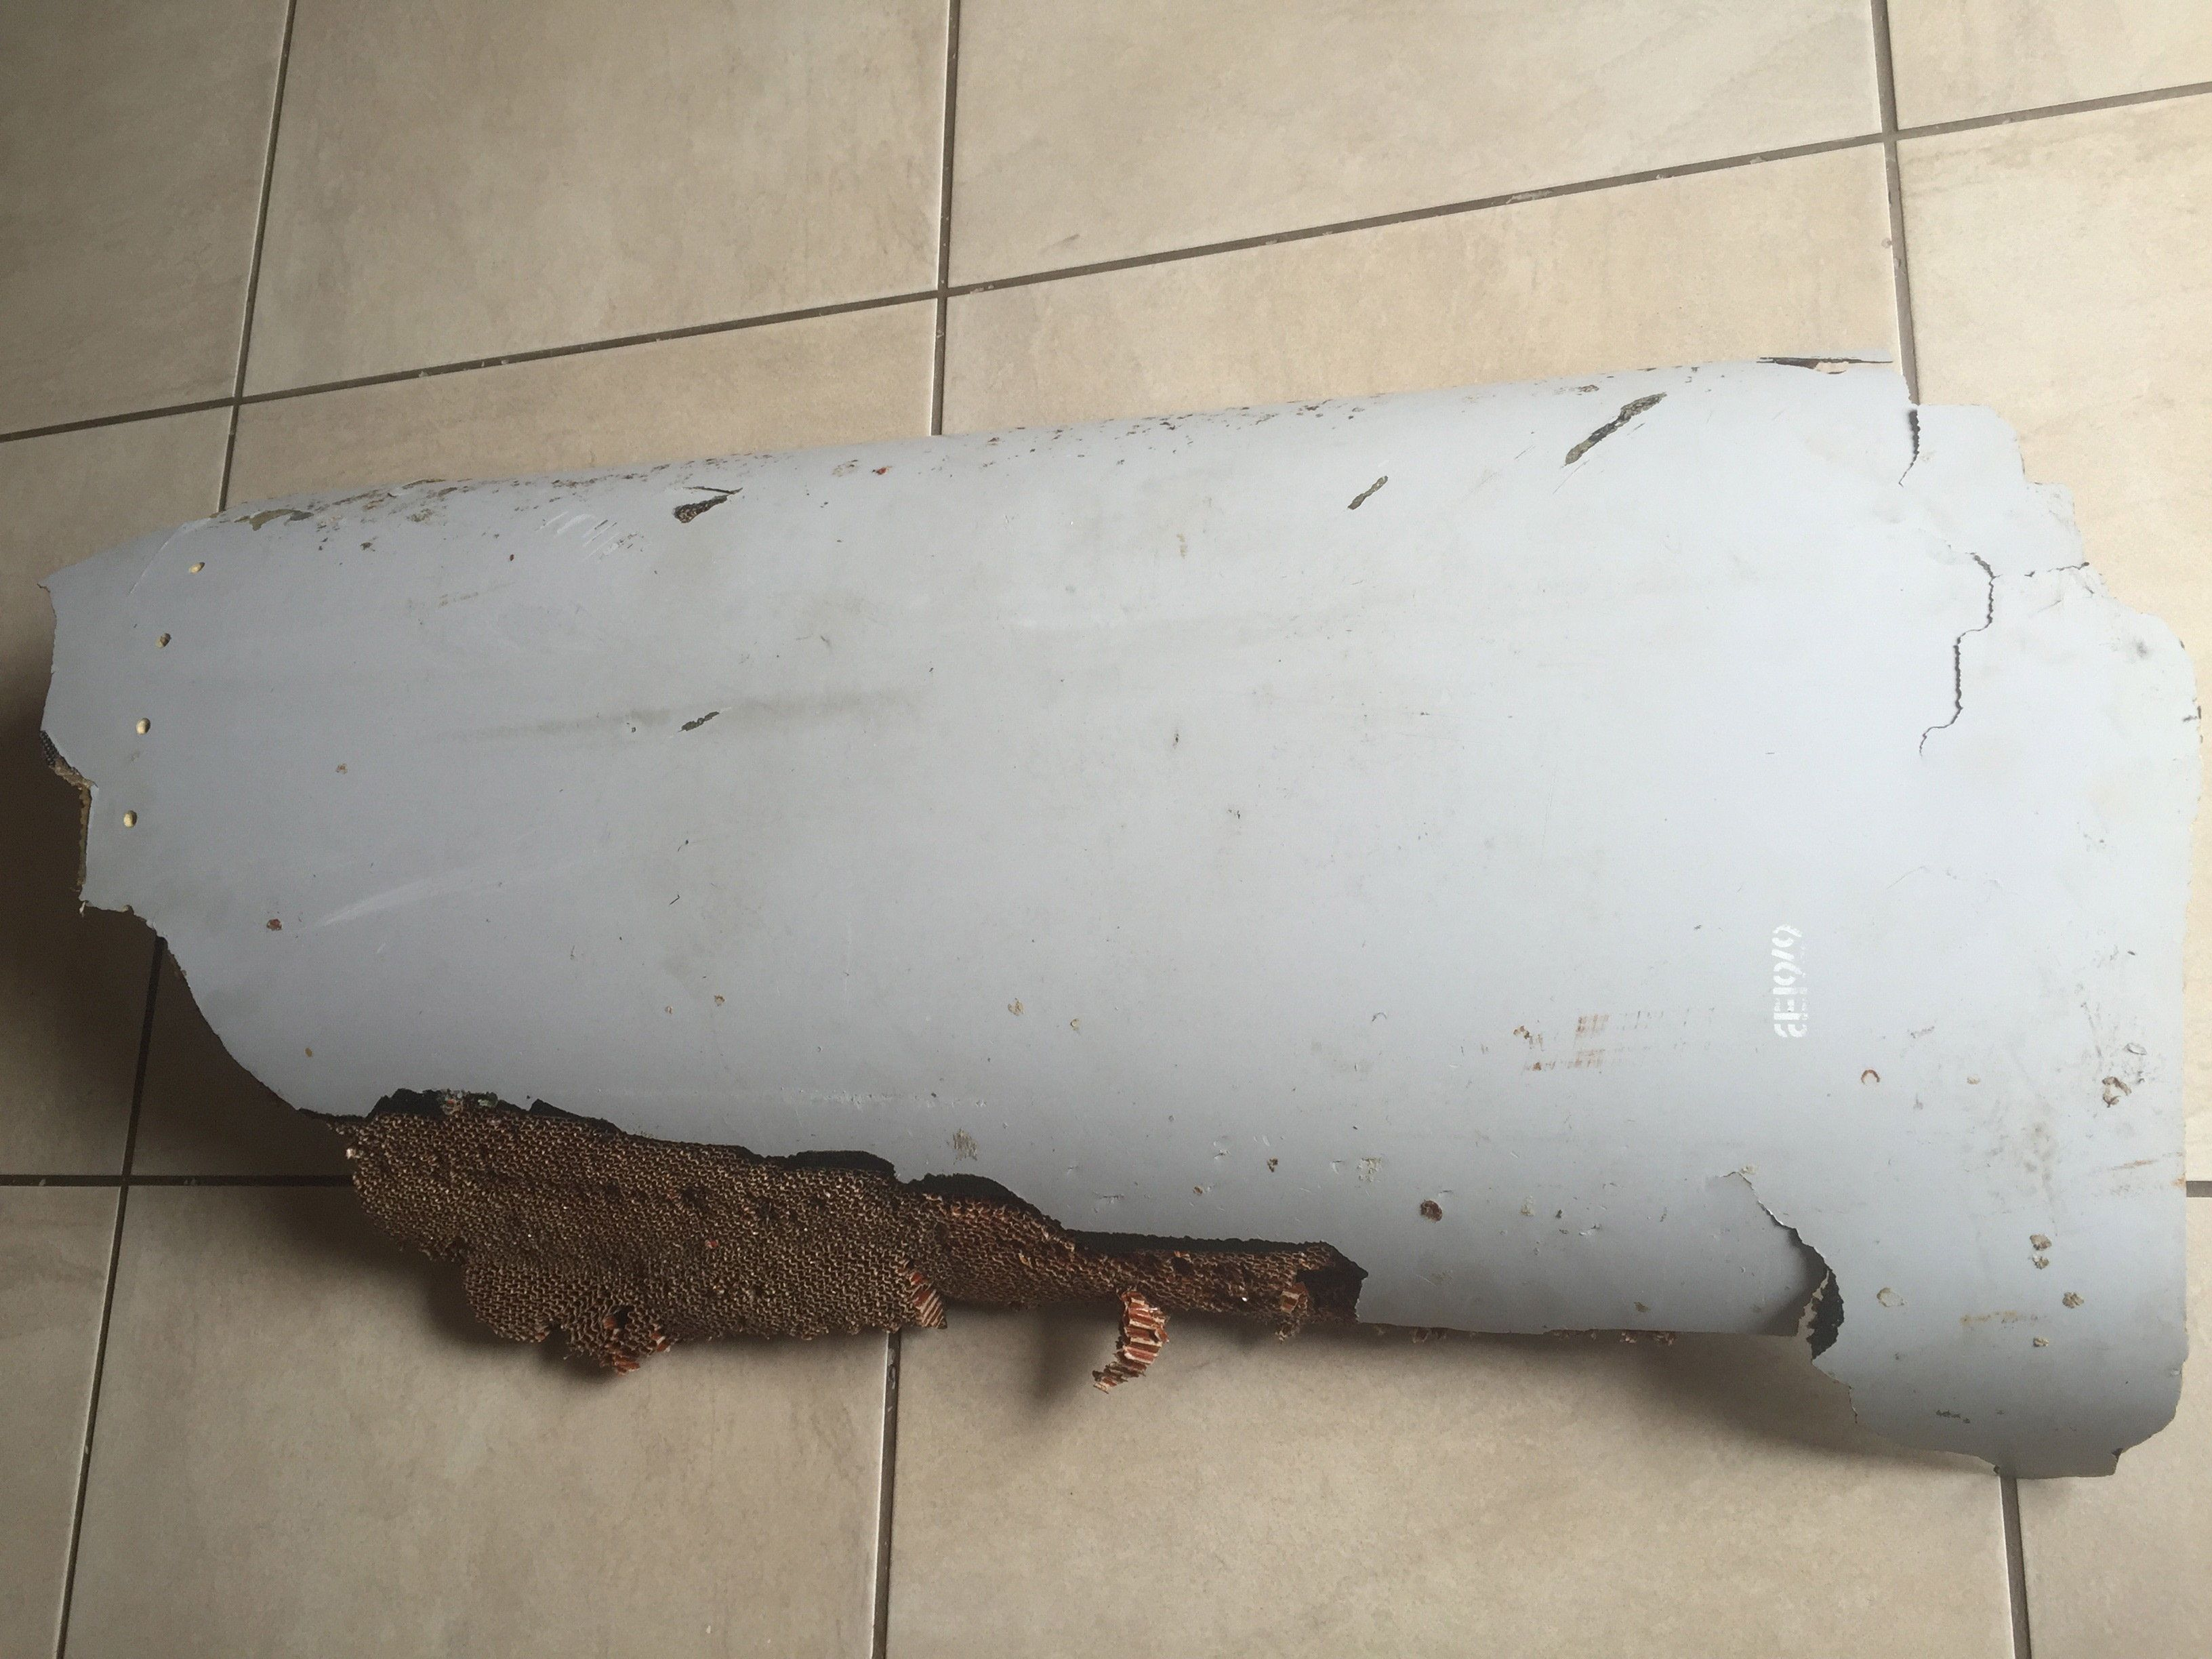 A piece of debris found by a South African family off the Mozambique coast in December 2015, which authorities will examine to see if it is from missing Malaysia Airlines flight MH370, is pictured in this handout photo released to Reuters March 11, 2016. REUTERS/Candace Lotter/Handout via Reuters      ATTENTION EDITORS - THIS PICTURE WAS PROVIDED BY A THIRD PARTY. REUTERS IS UNABLE TO INDEPENDENTLY VERIFY THE AUTHENTICITY, CONTENT, LOCATION OR DATE OF THIS IMAGE. FOR EDITORIAL USE ONLY. NOT FOR SALE FOR MARKETING OR ADVERTISING CAMPAIGNS. NO RESALES. NO ARCHIVE. THIS PICTURE IS DISTRIBUTED EXACTLY AS RECEIVED BY REUTERS, AS A SERVICE TO CLIENTS. MUST ON SCREEN COURTESY CANDACE LOTTER. MANDATORY CREDIT      TPX IMAGES OF THE DAY